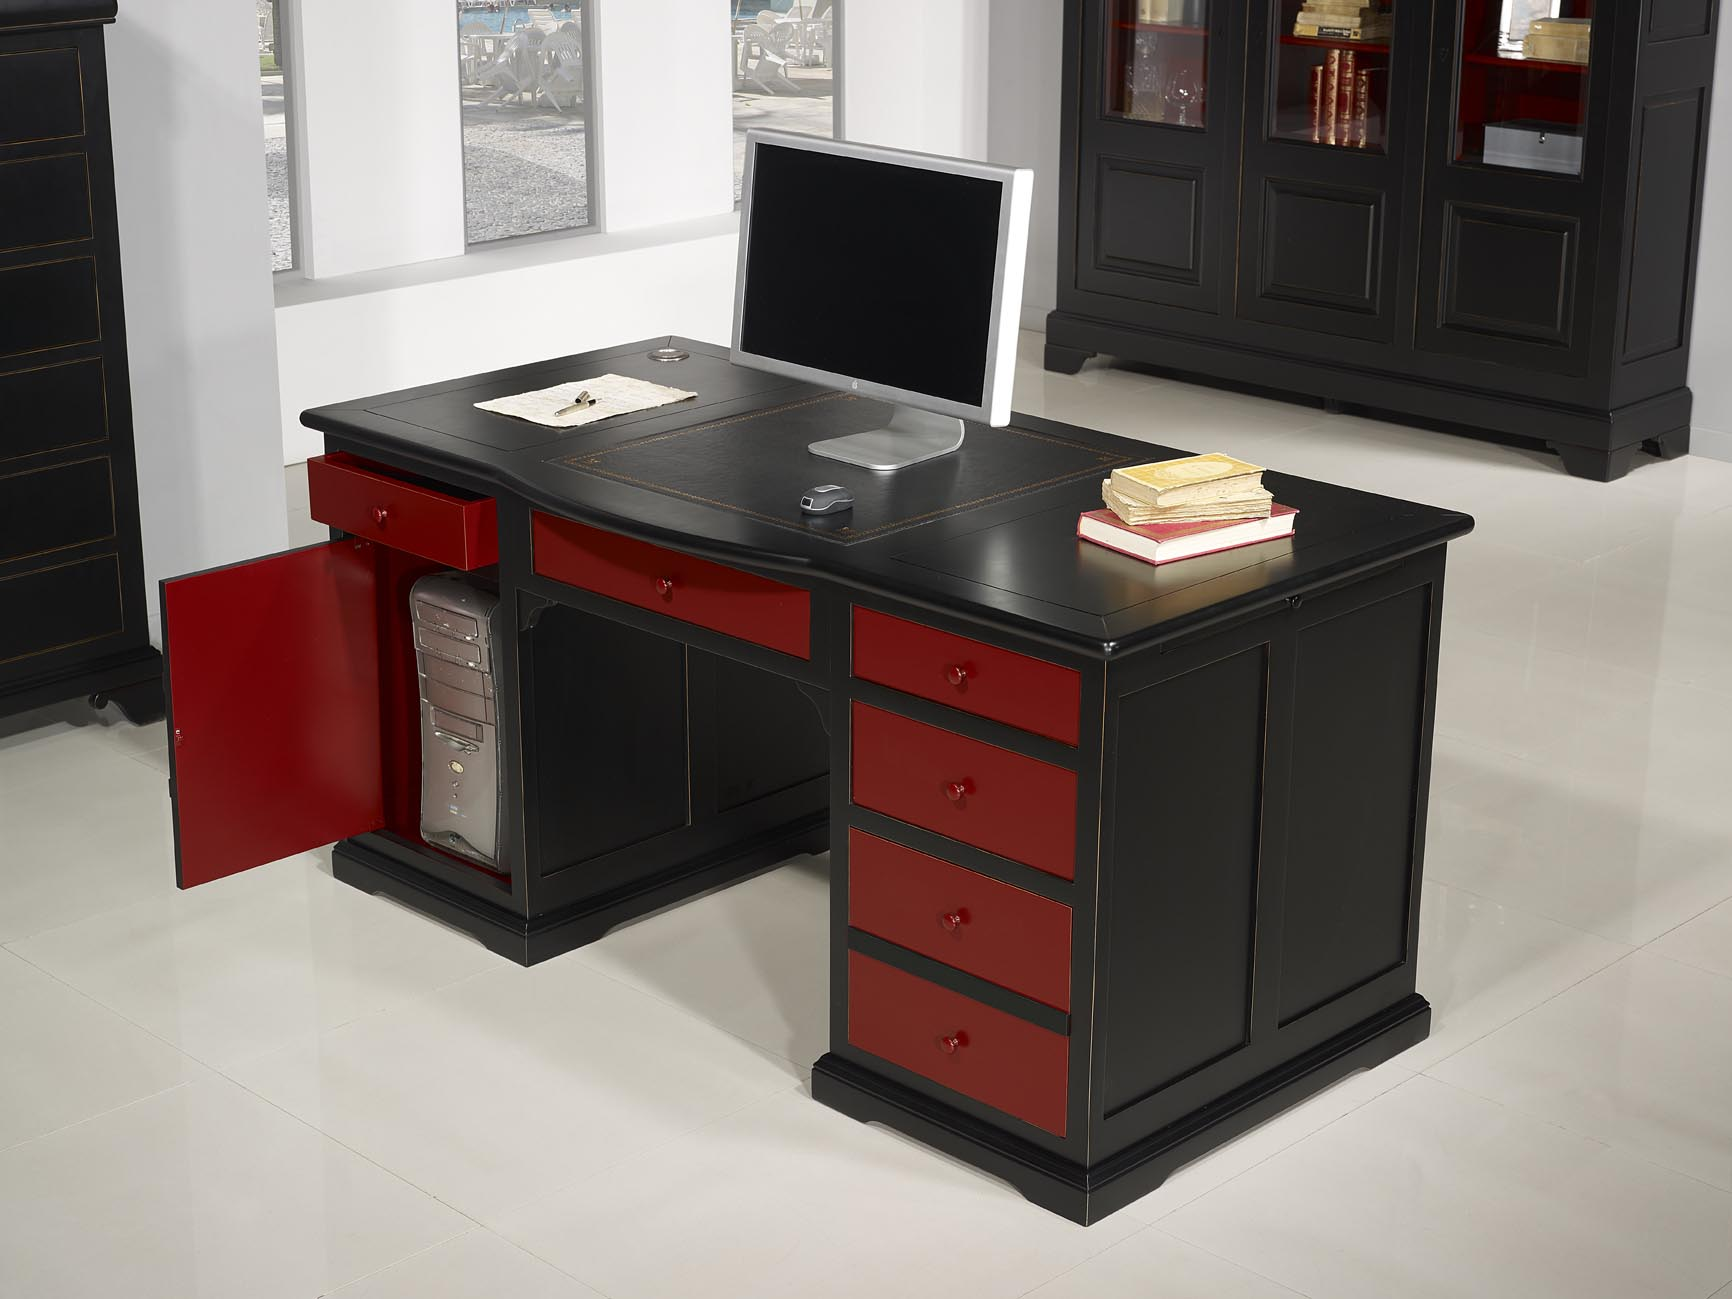 superbe bureau ministre sp cial informatique en merisier de style louis philippe patin noir et. Black Bedroom Furniture Sets. Home Design Ideas